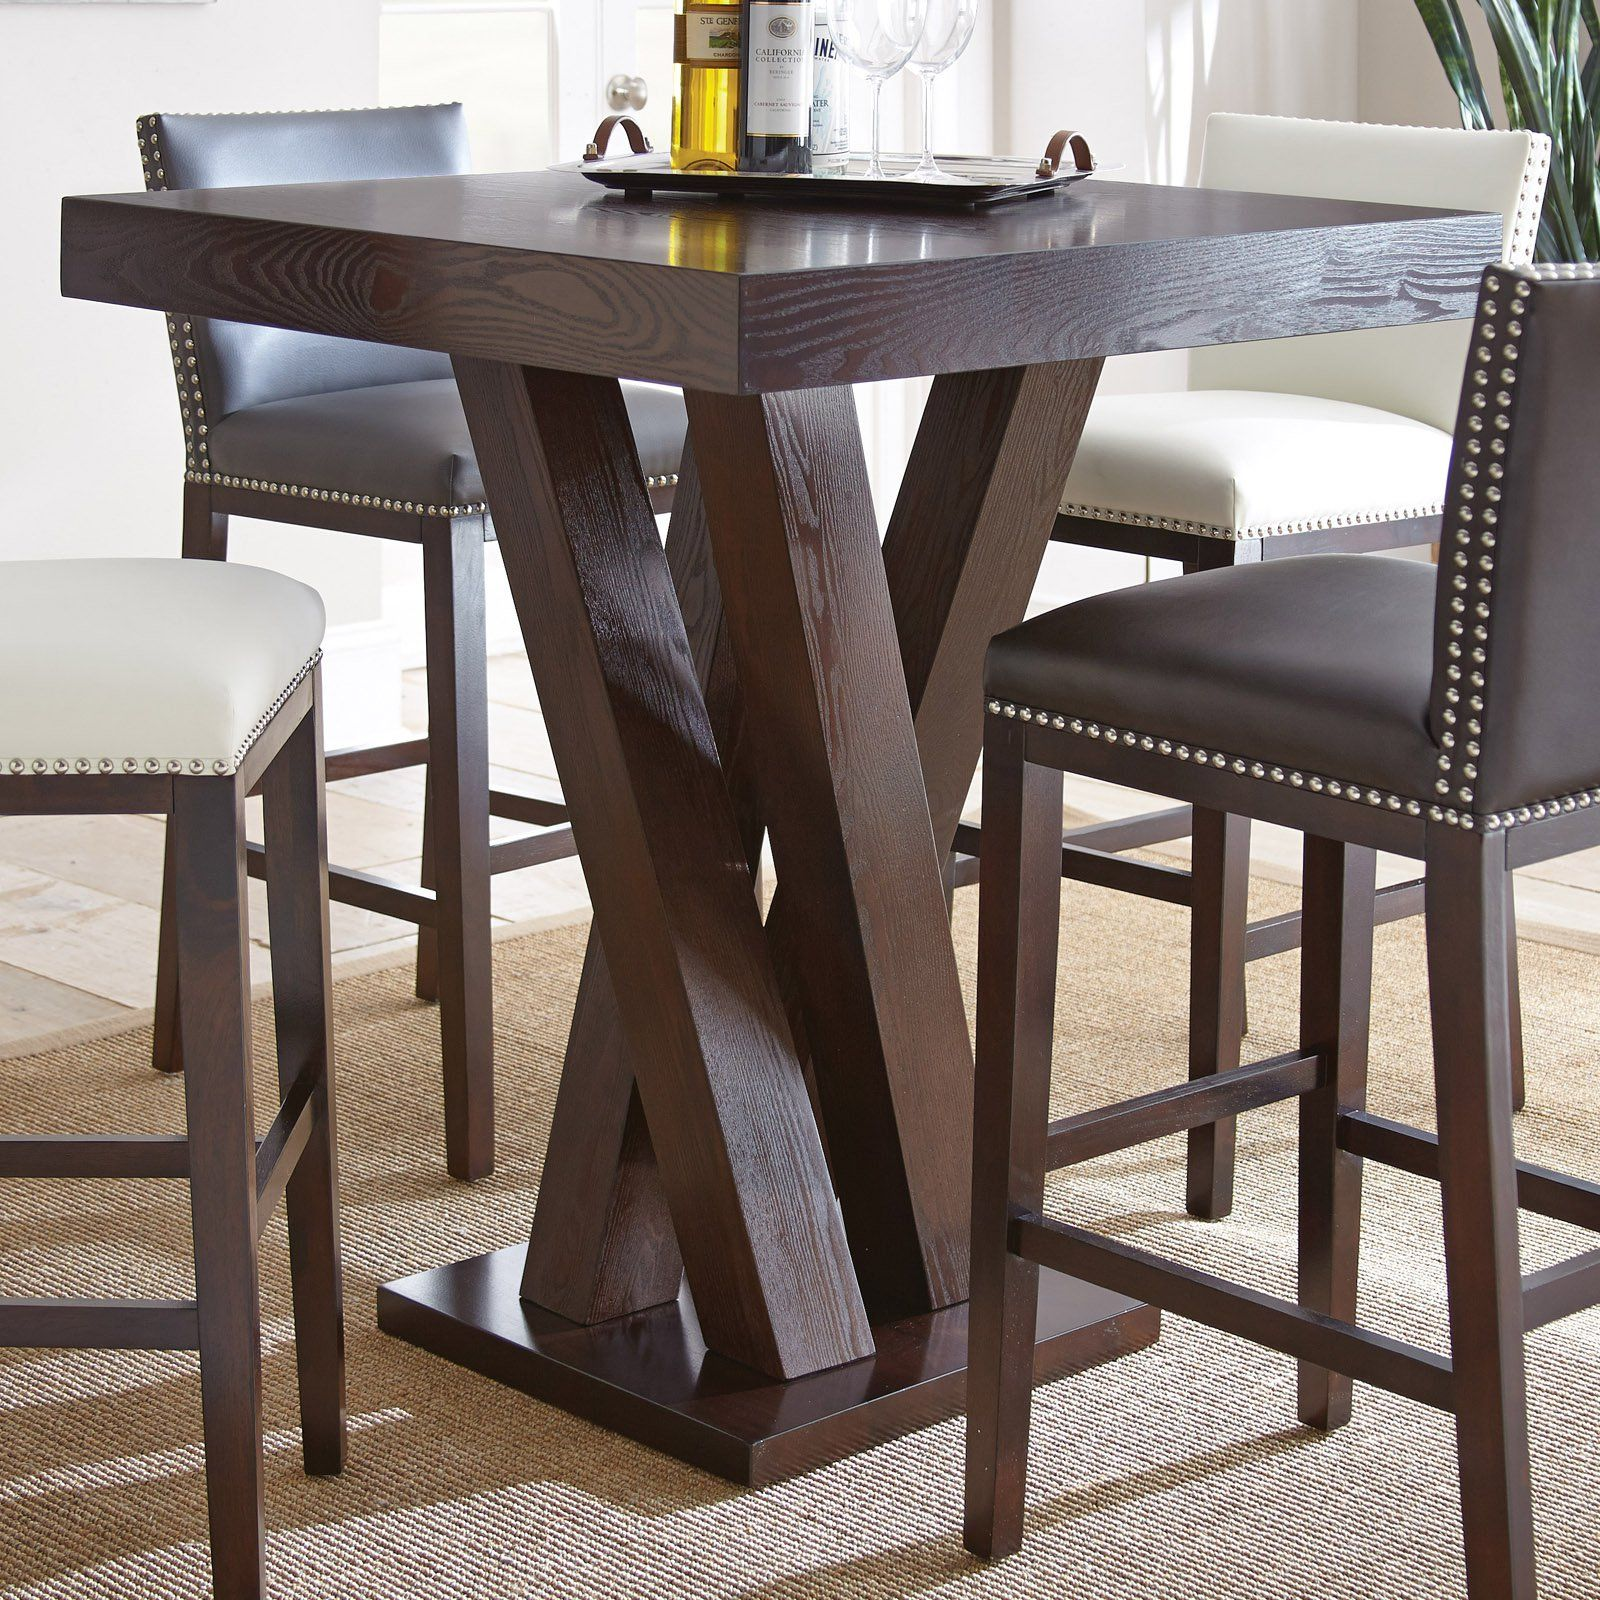 Genial Steve Silver Tiffany Square Bar Height Table | From Hayneedle.com Dining  Rooms, Dining